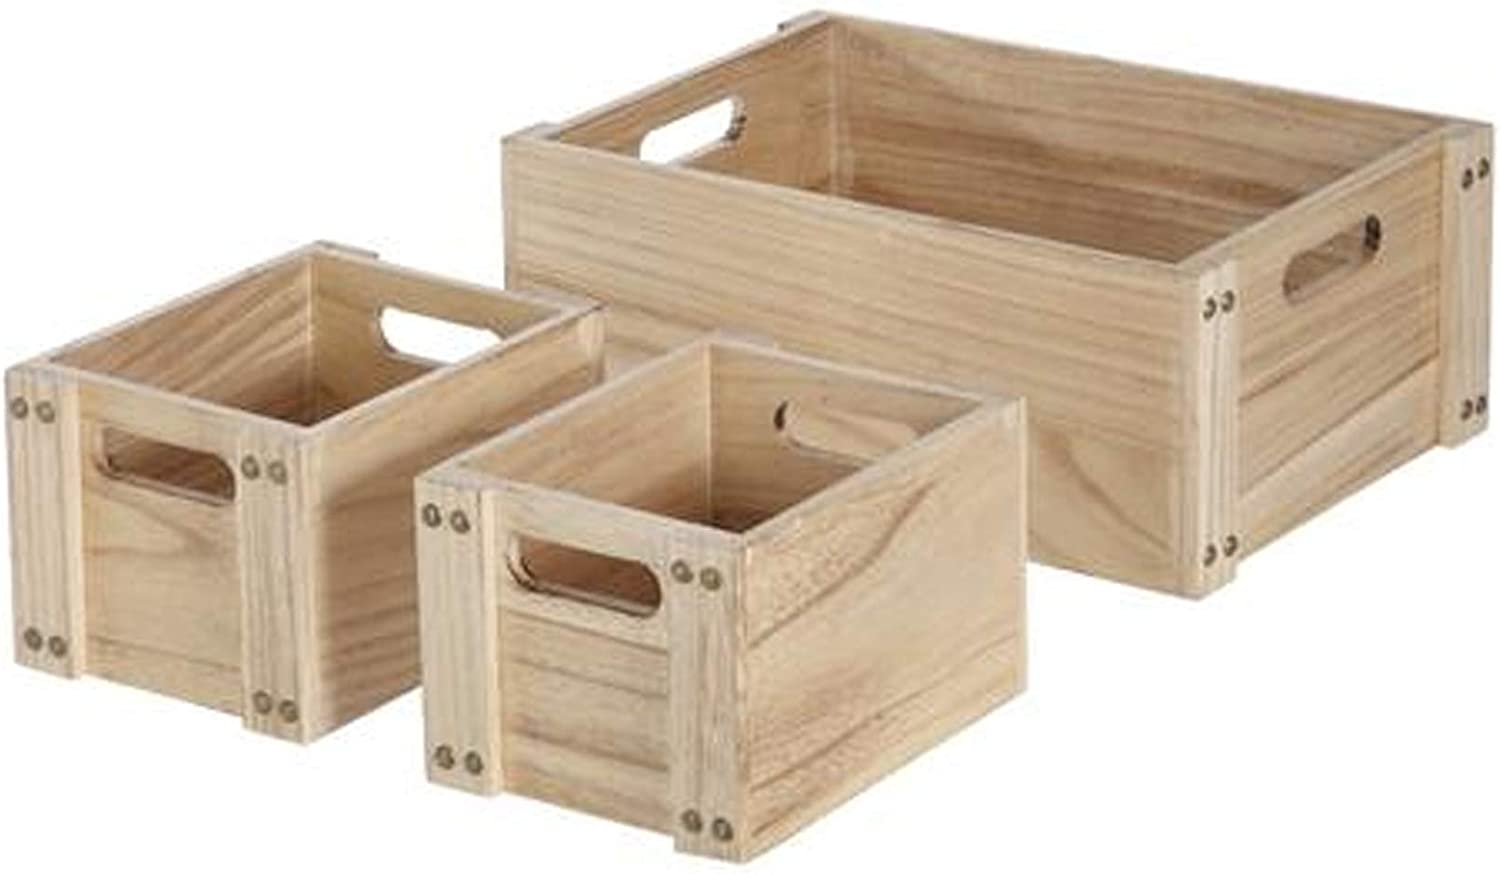 Wisechoice Durable Wooden Crate Rectangle Container Set Perfect for Storing Towels, Craft Tools and Toys, 3 Pieces